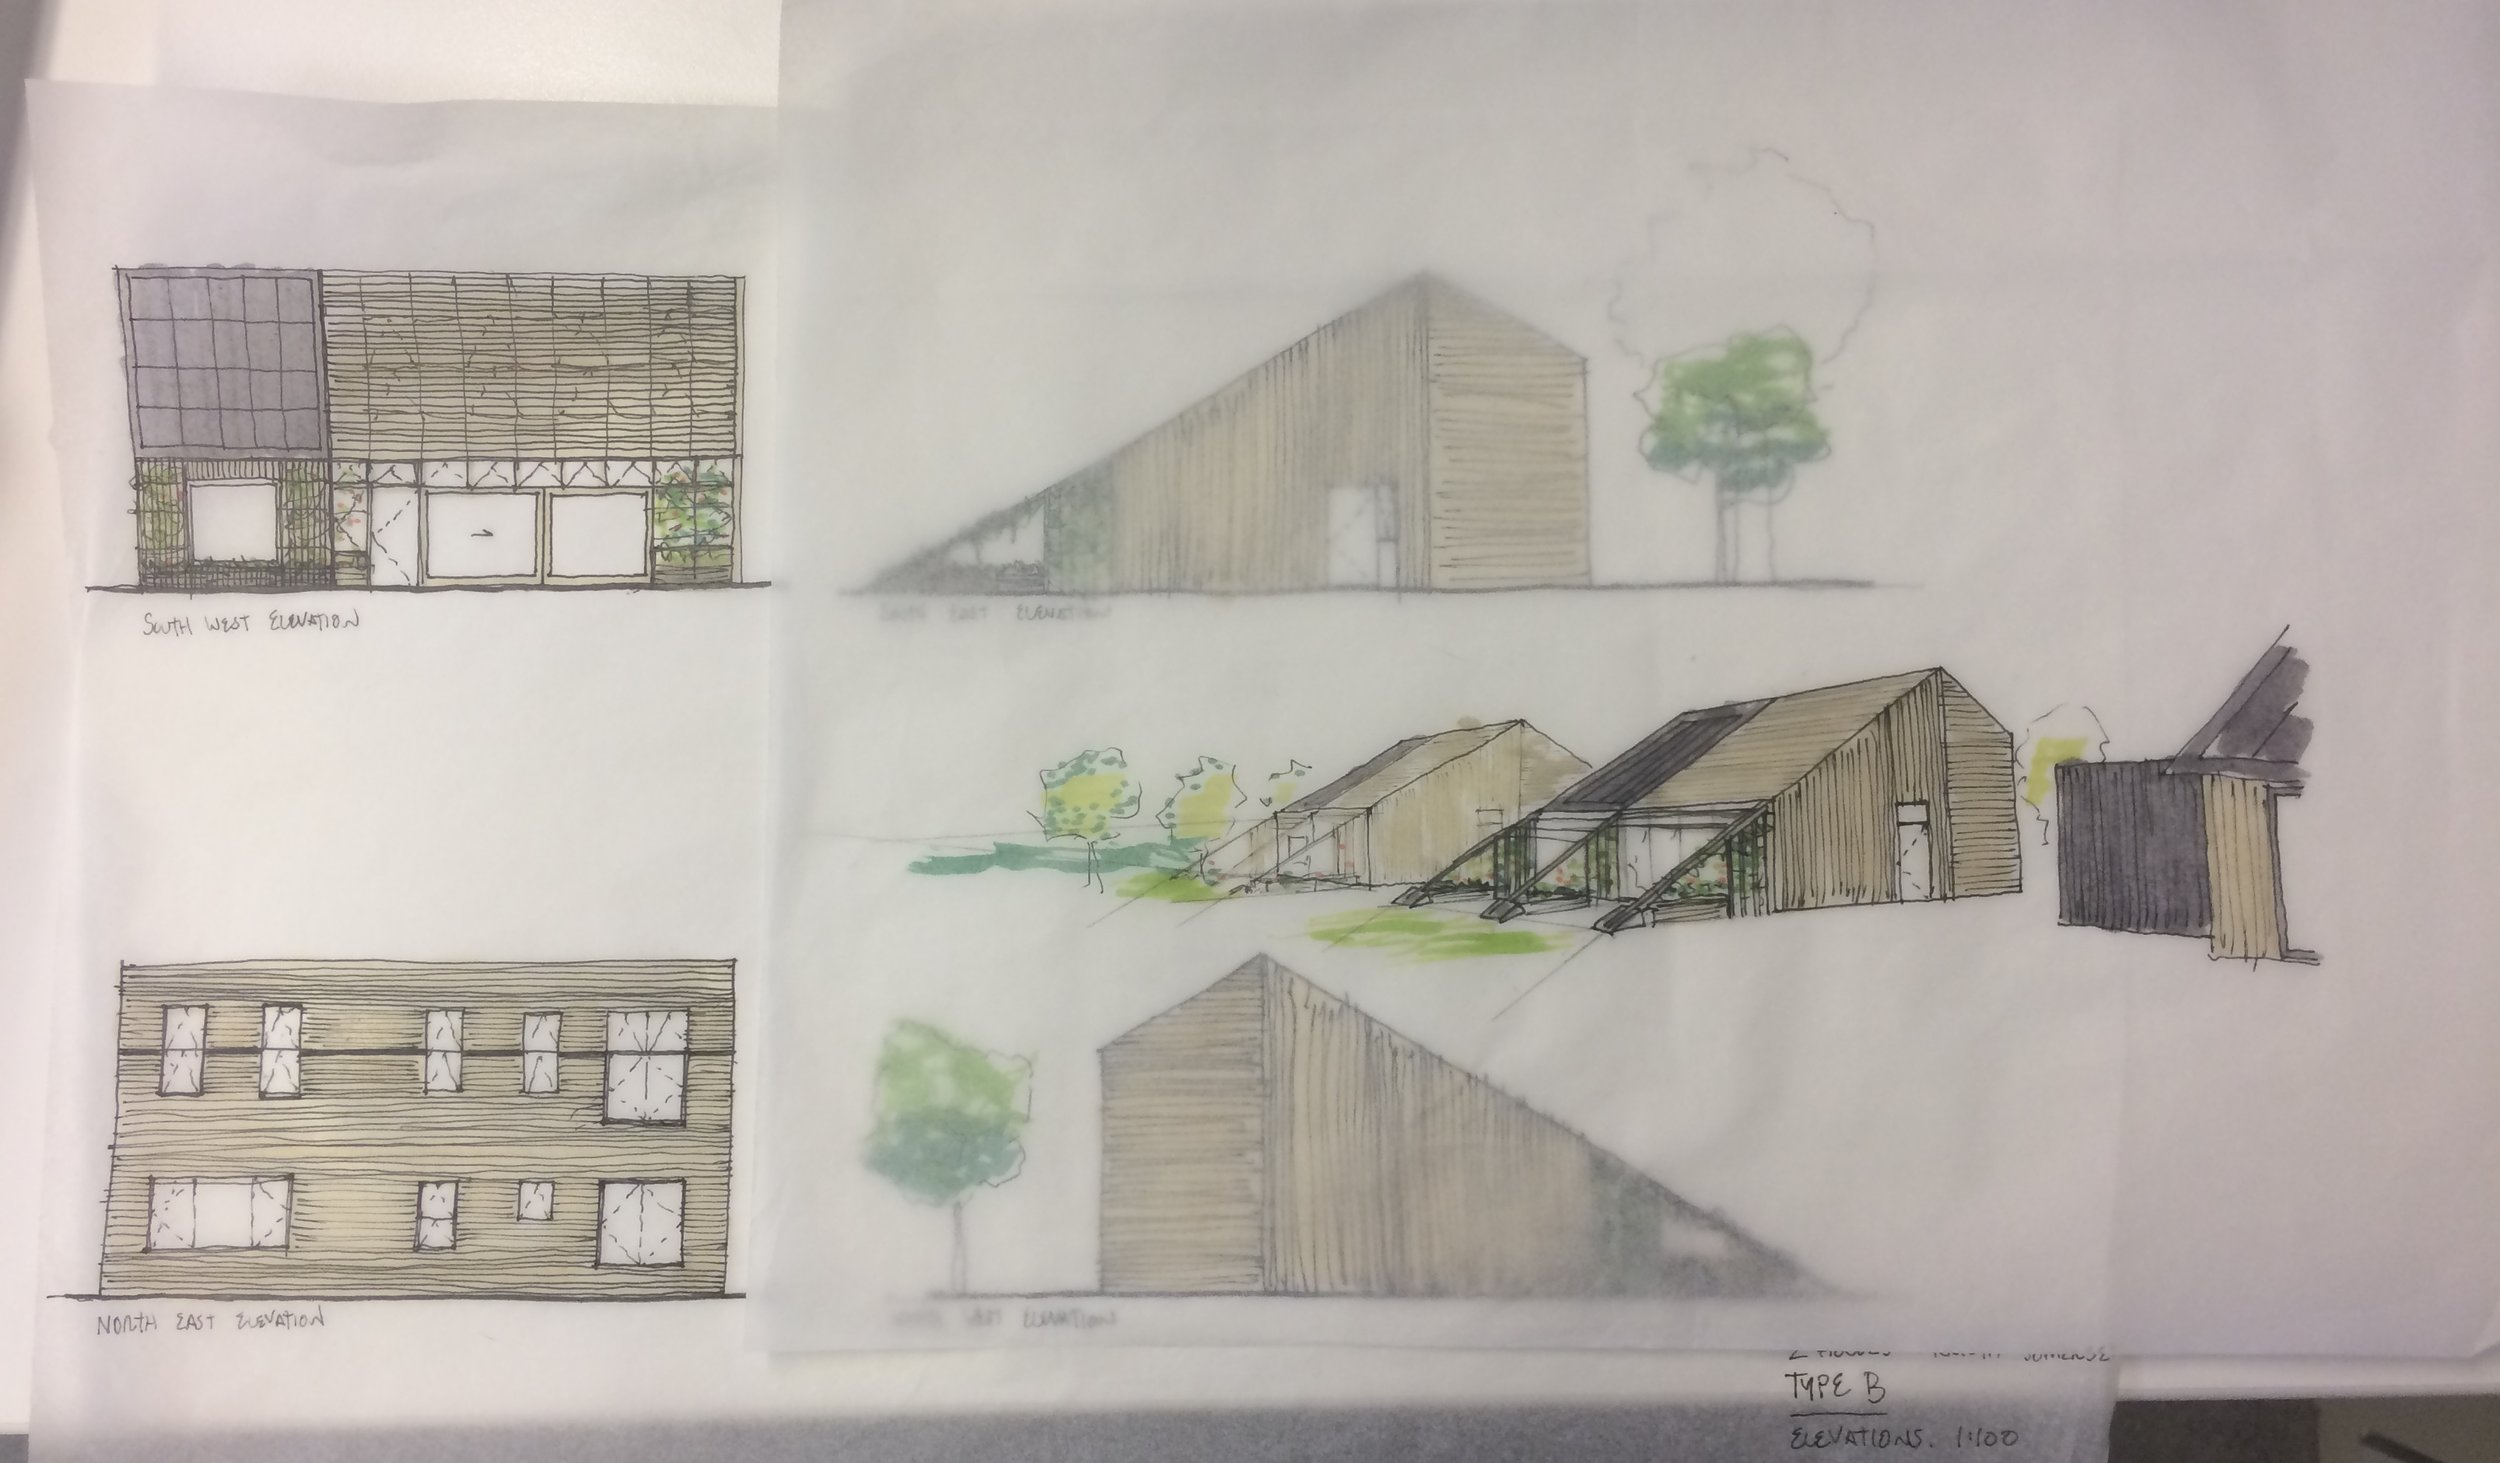 Concept sketches of the proposed homes